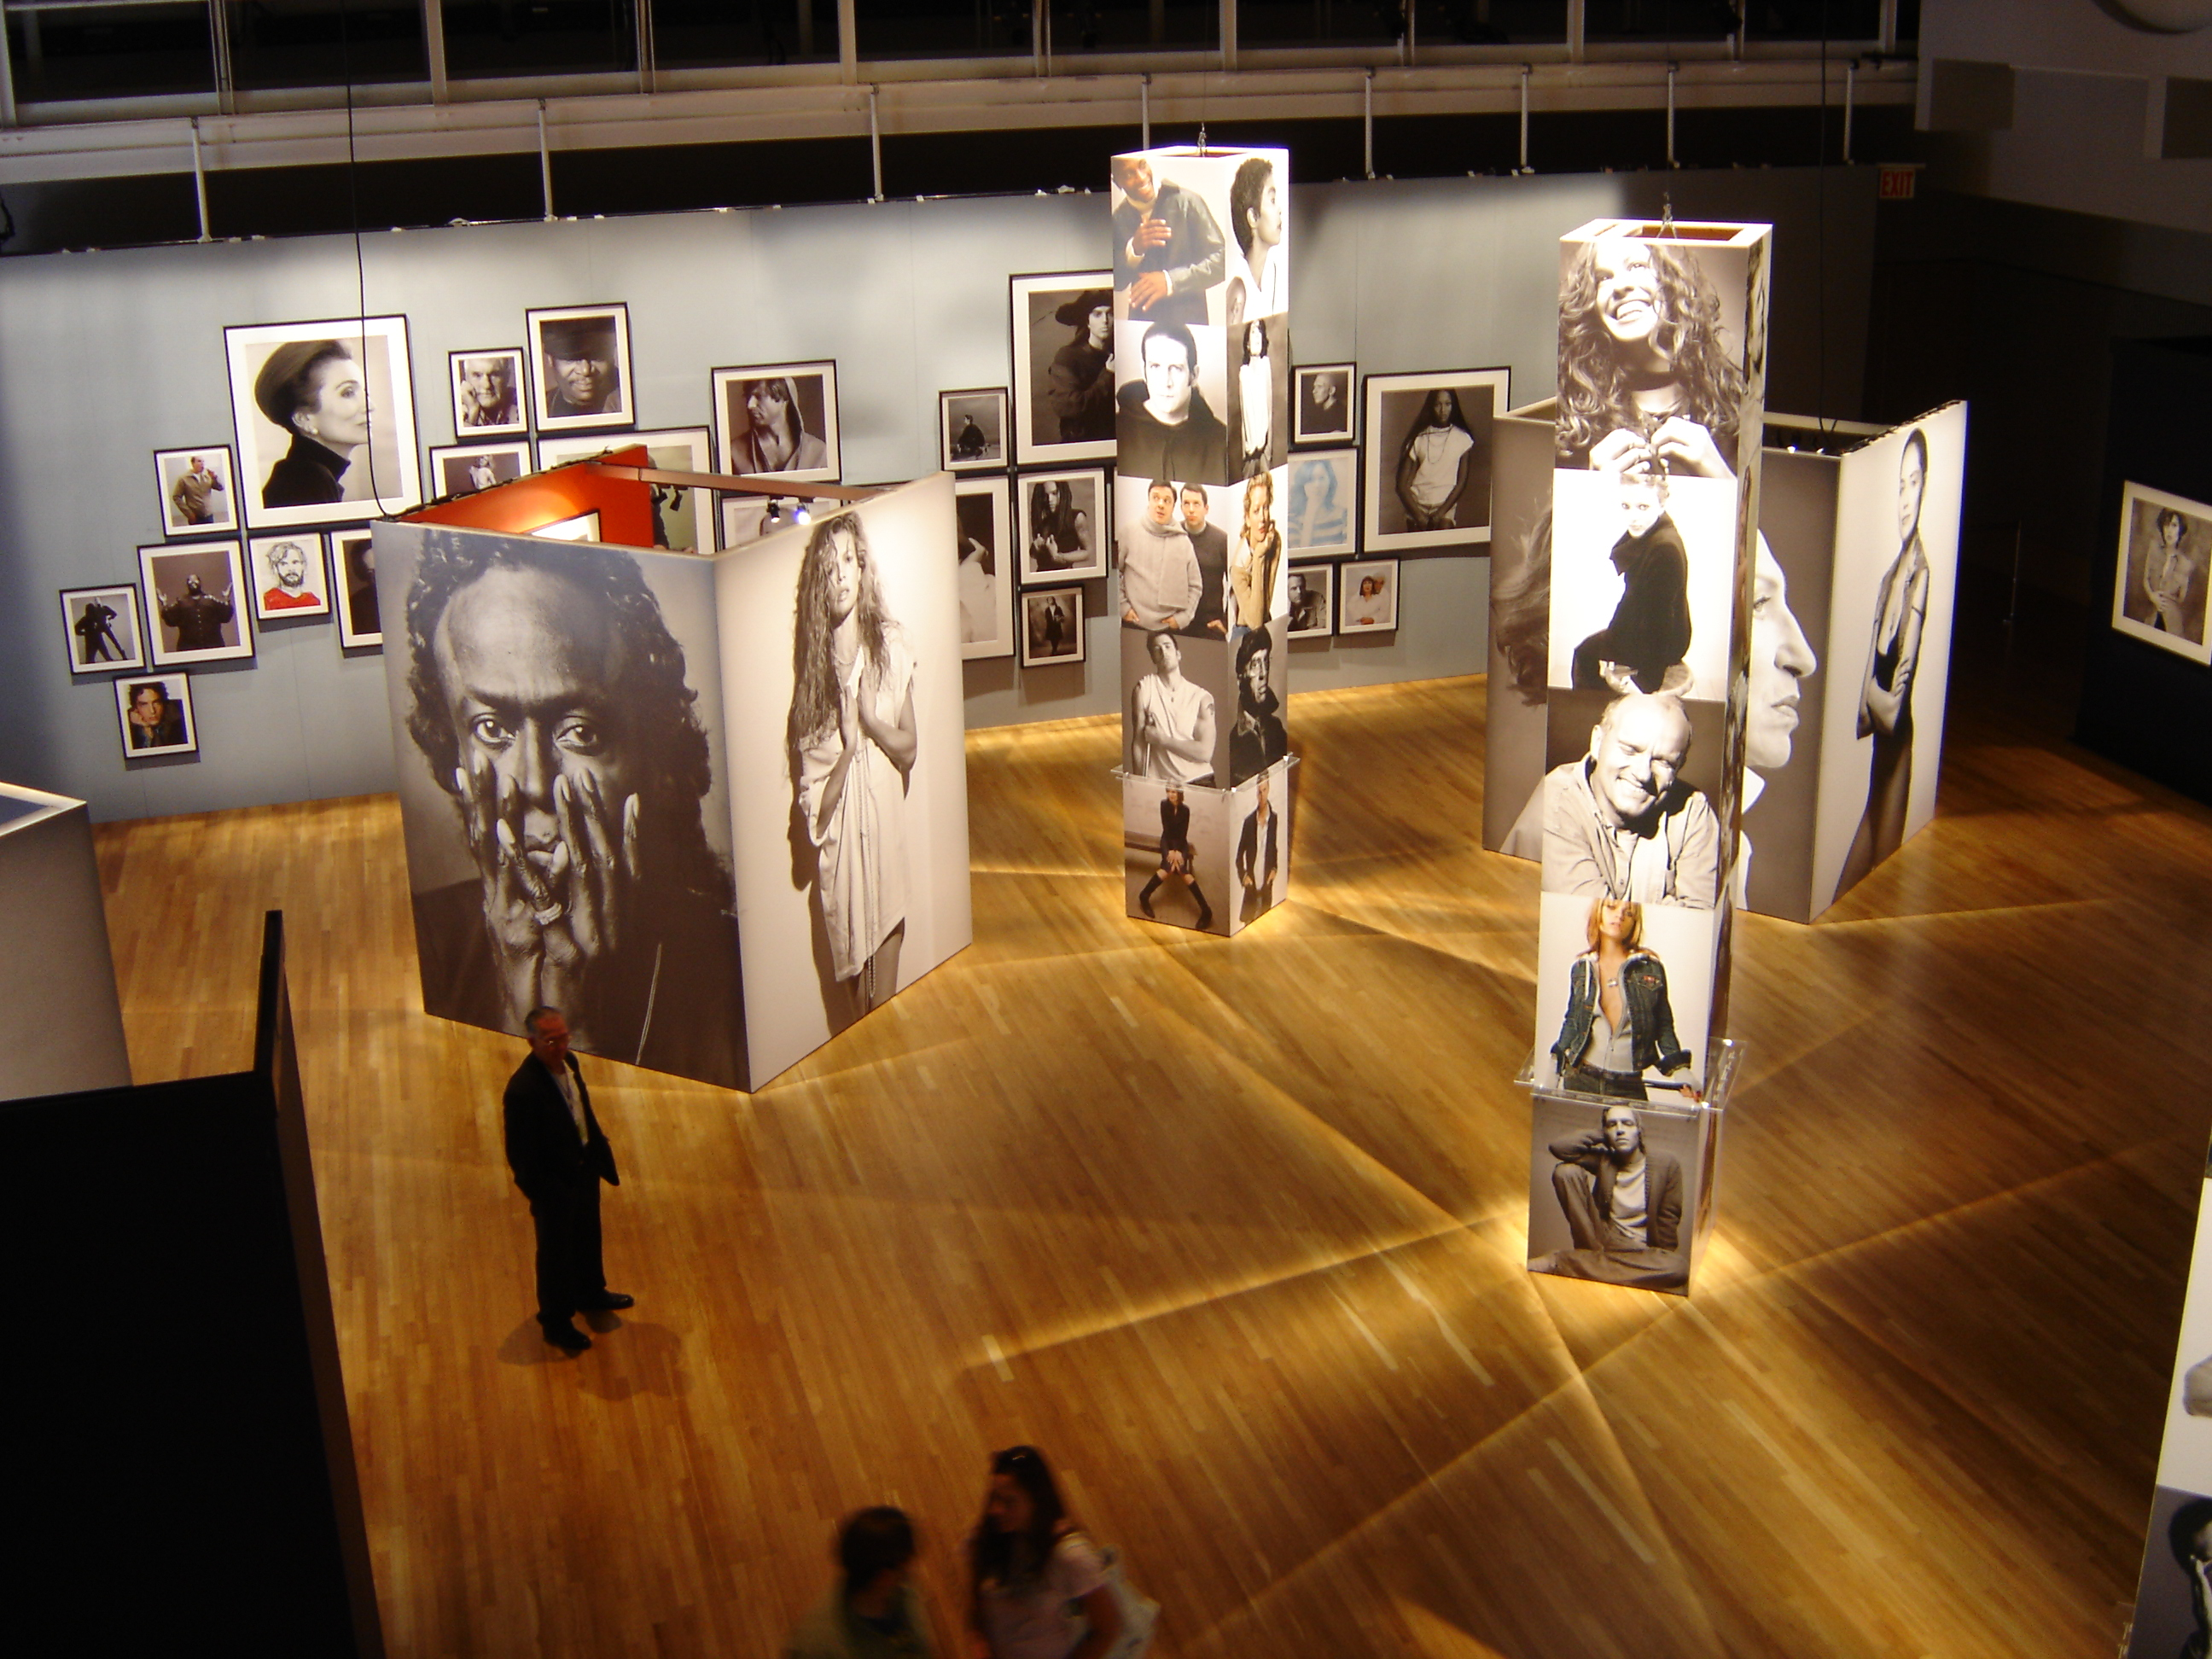 Exhibition Booth Photography : Individuals exhibition by frances liddell at coroflot